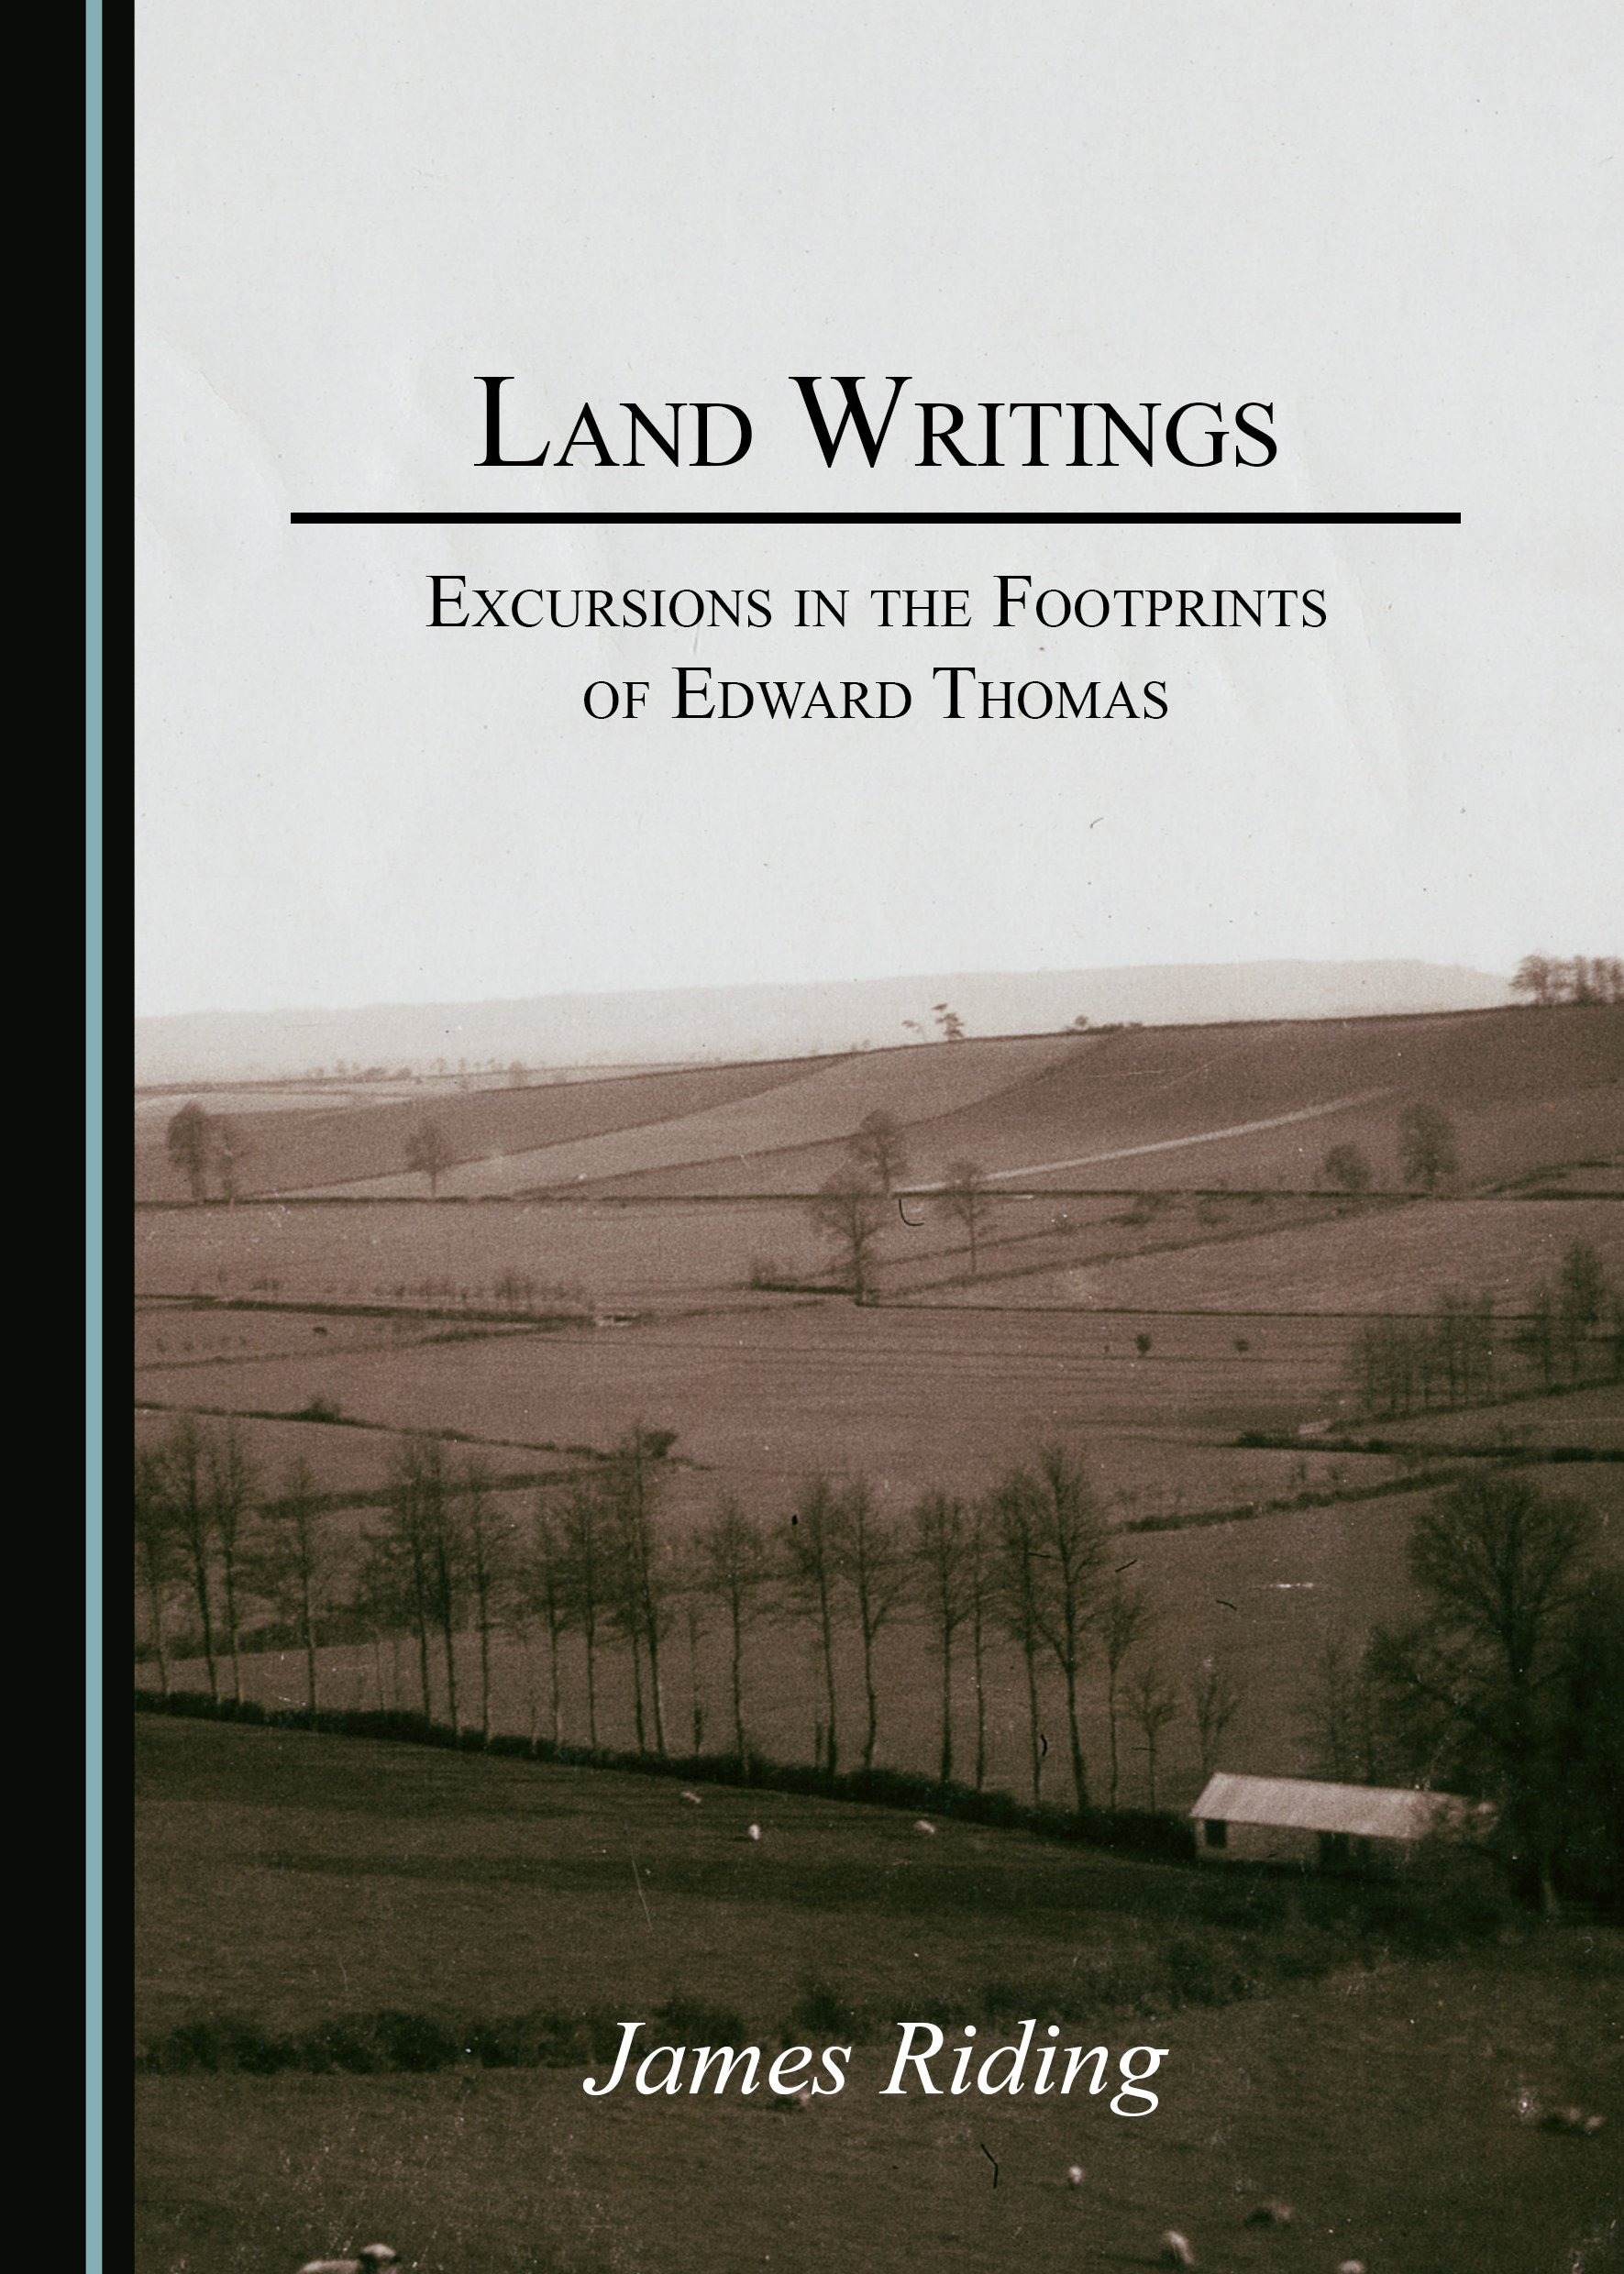 Land Writings: Excursions in the Footprints of Edward Thomas